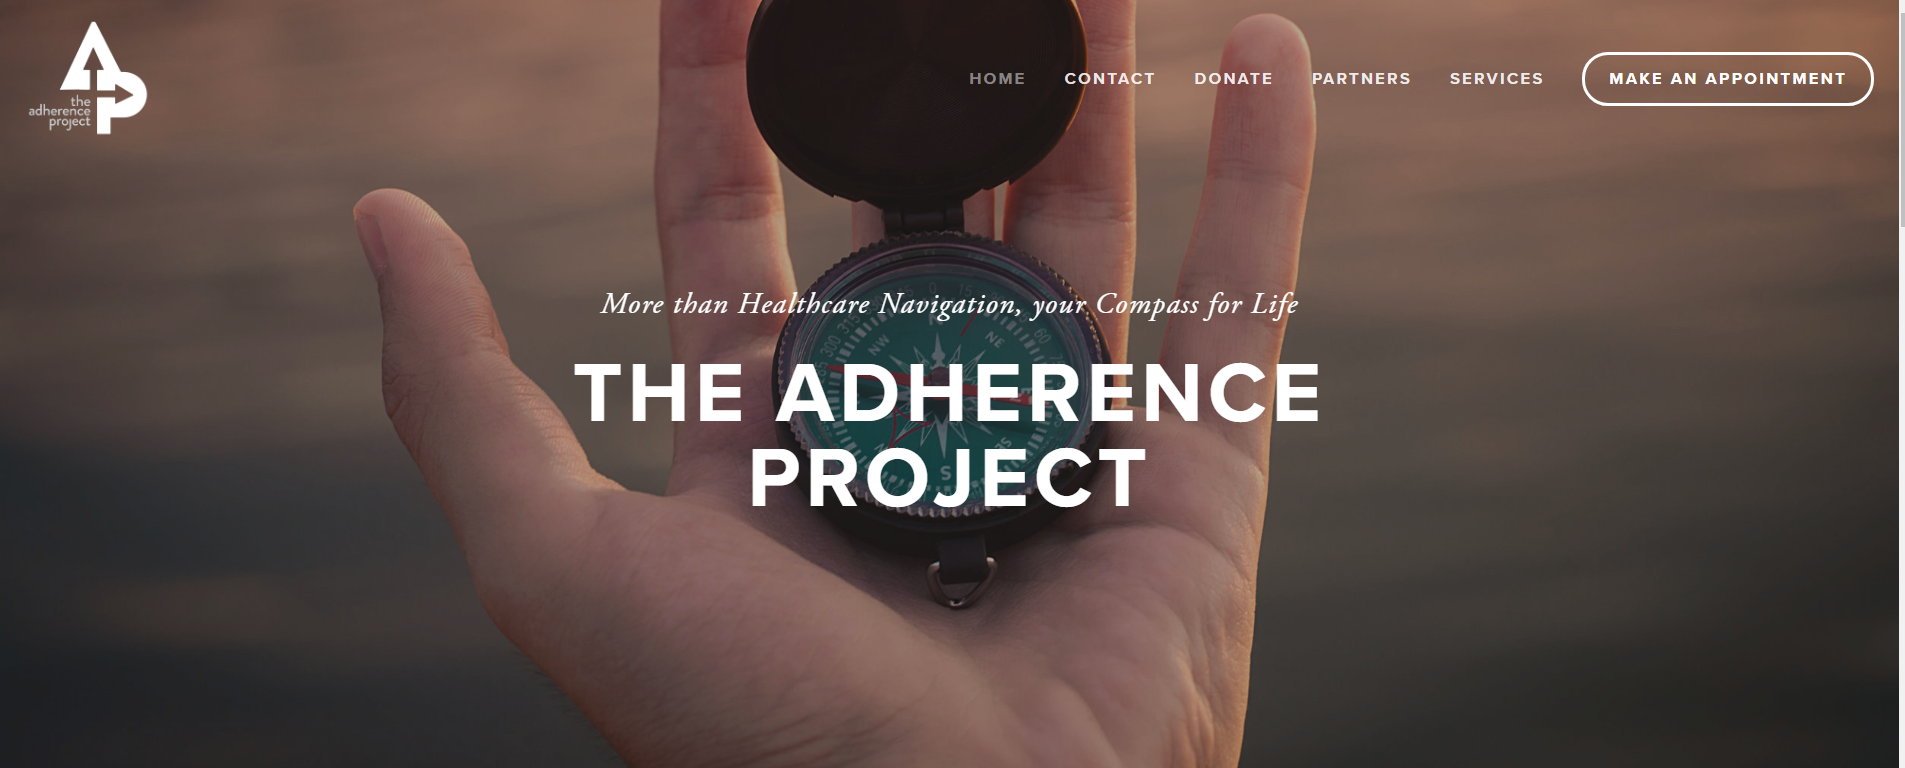 The Adherence Project - Non Profit Website